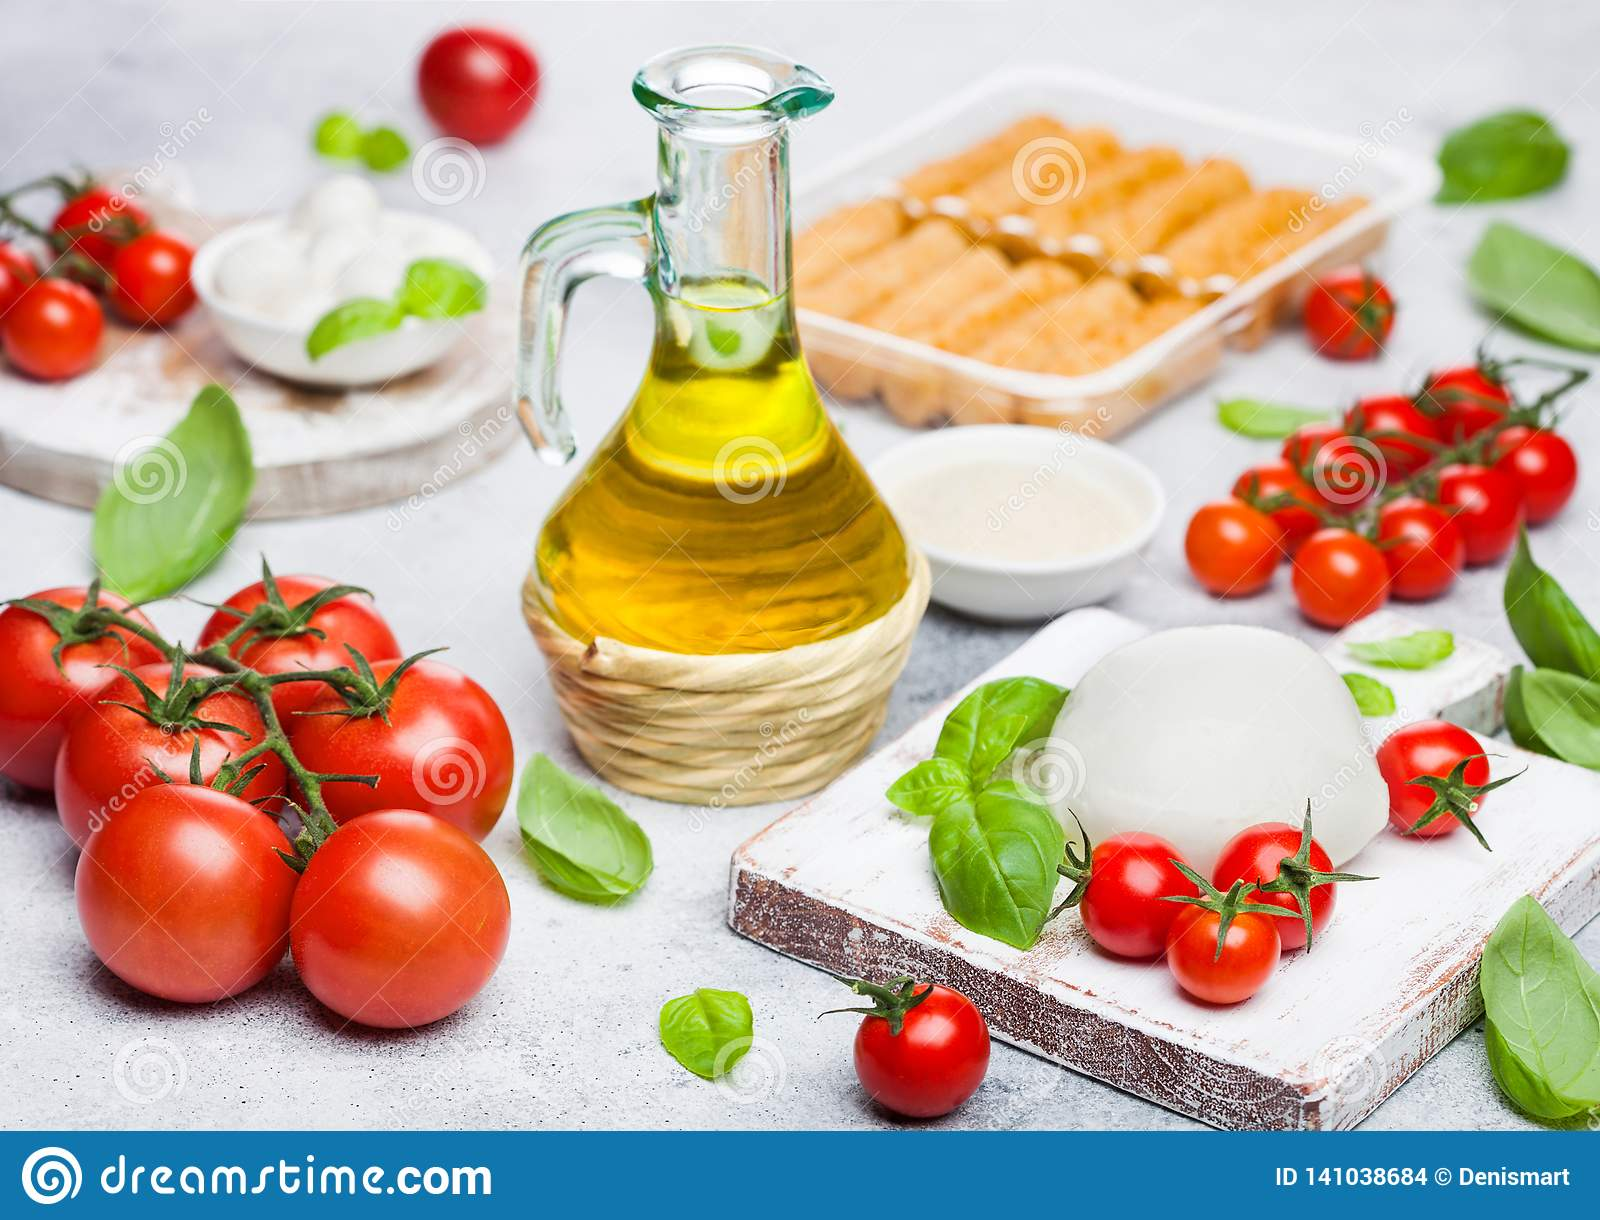 Fresh Mozzarella Cheese On Vintage Chopping Board With Tomatoes And Basil Leaf With Olive Oil And Tray With Cheese Sticks On Stone Stock Photo Image Of Fresh Deep 141038684